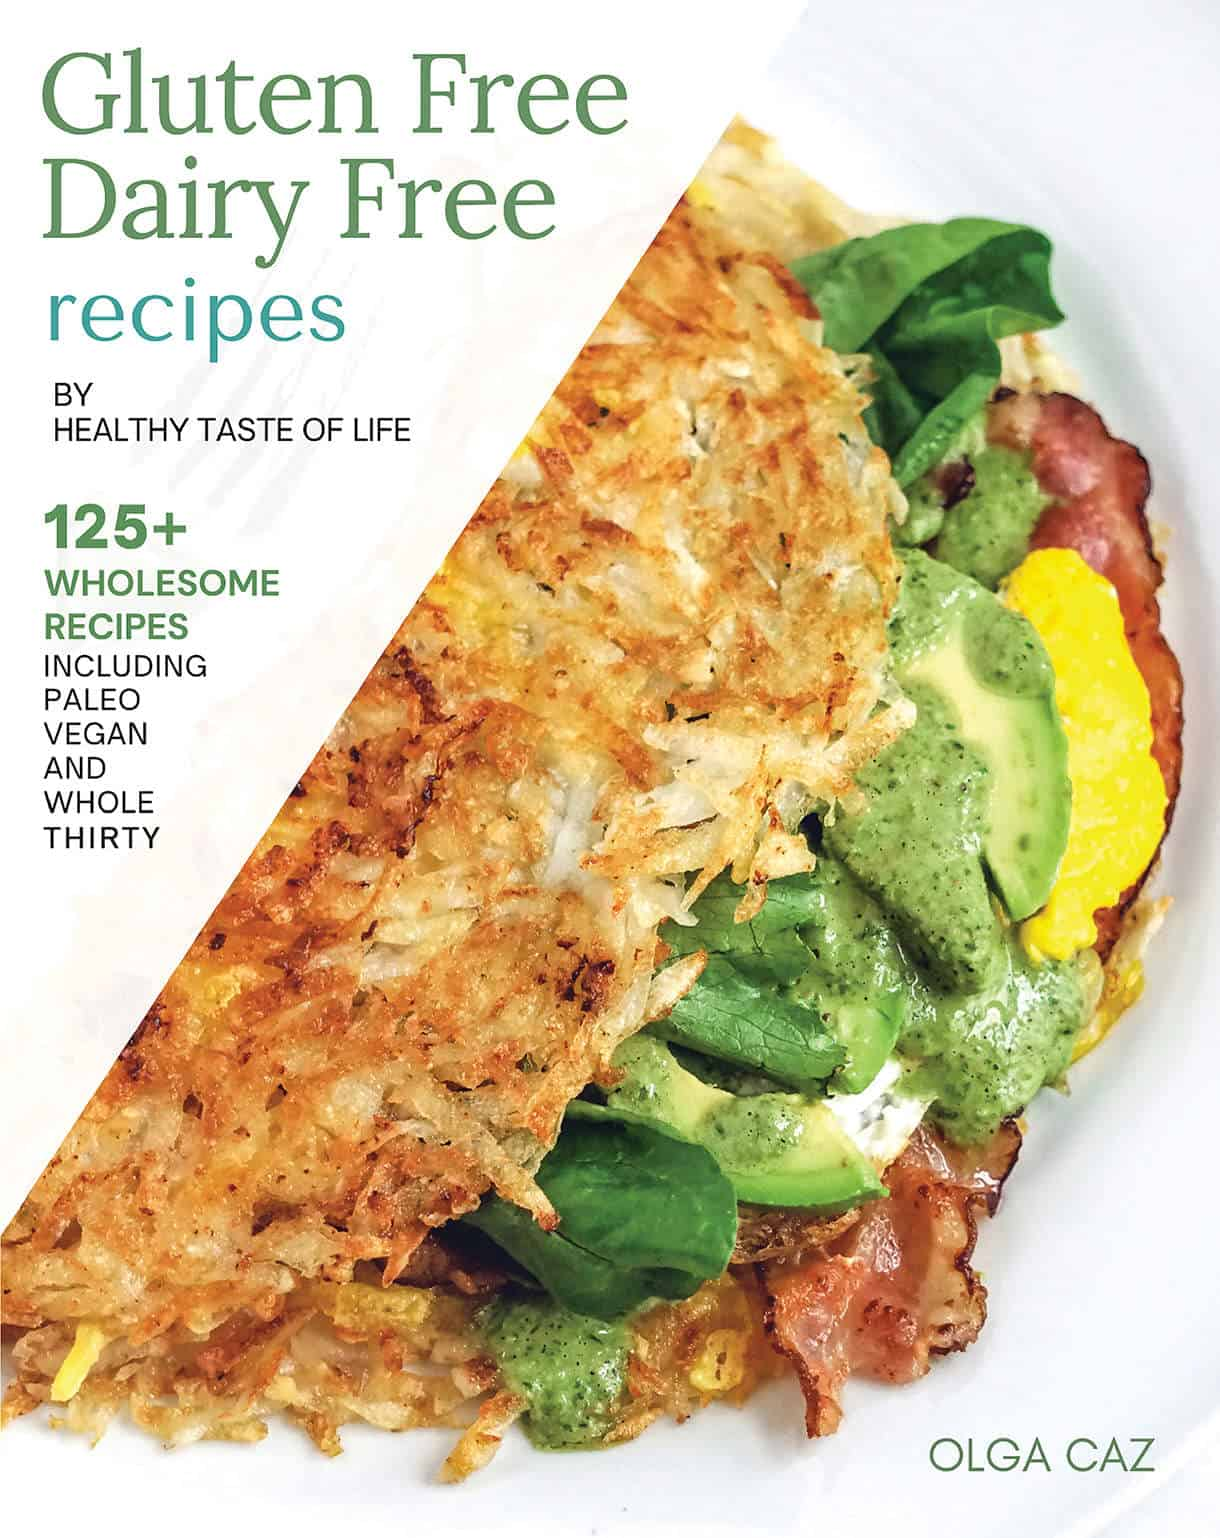 Gluten Free Dairy Free Recipes By Healthy Taste Of Life book